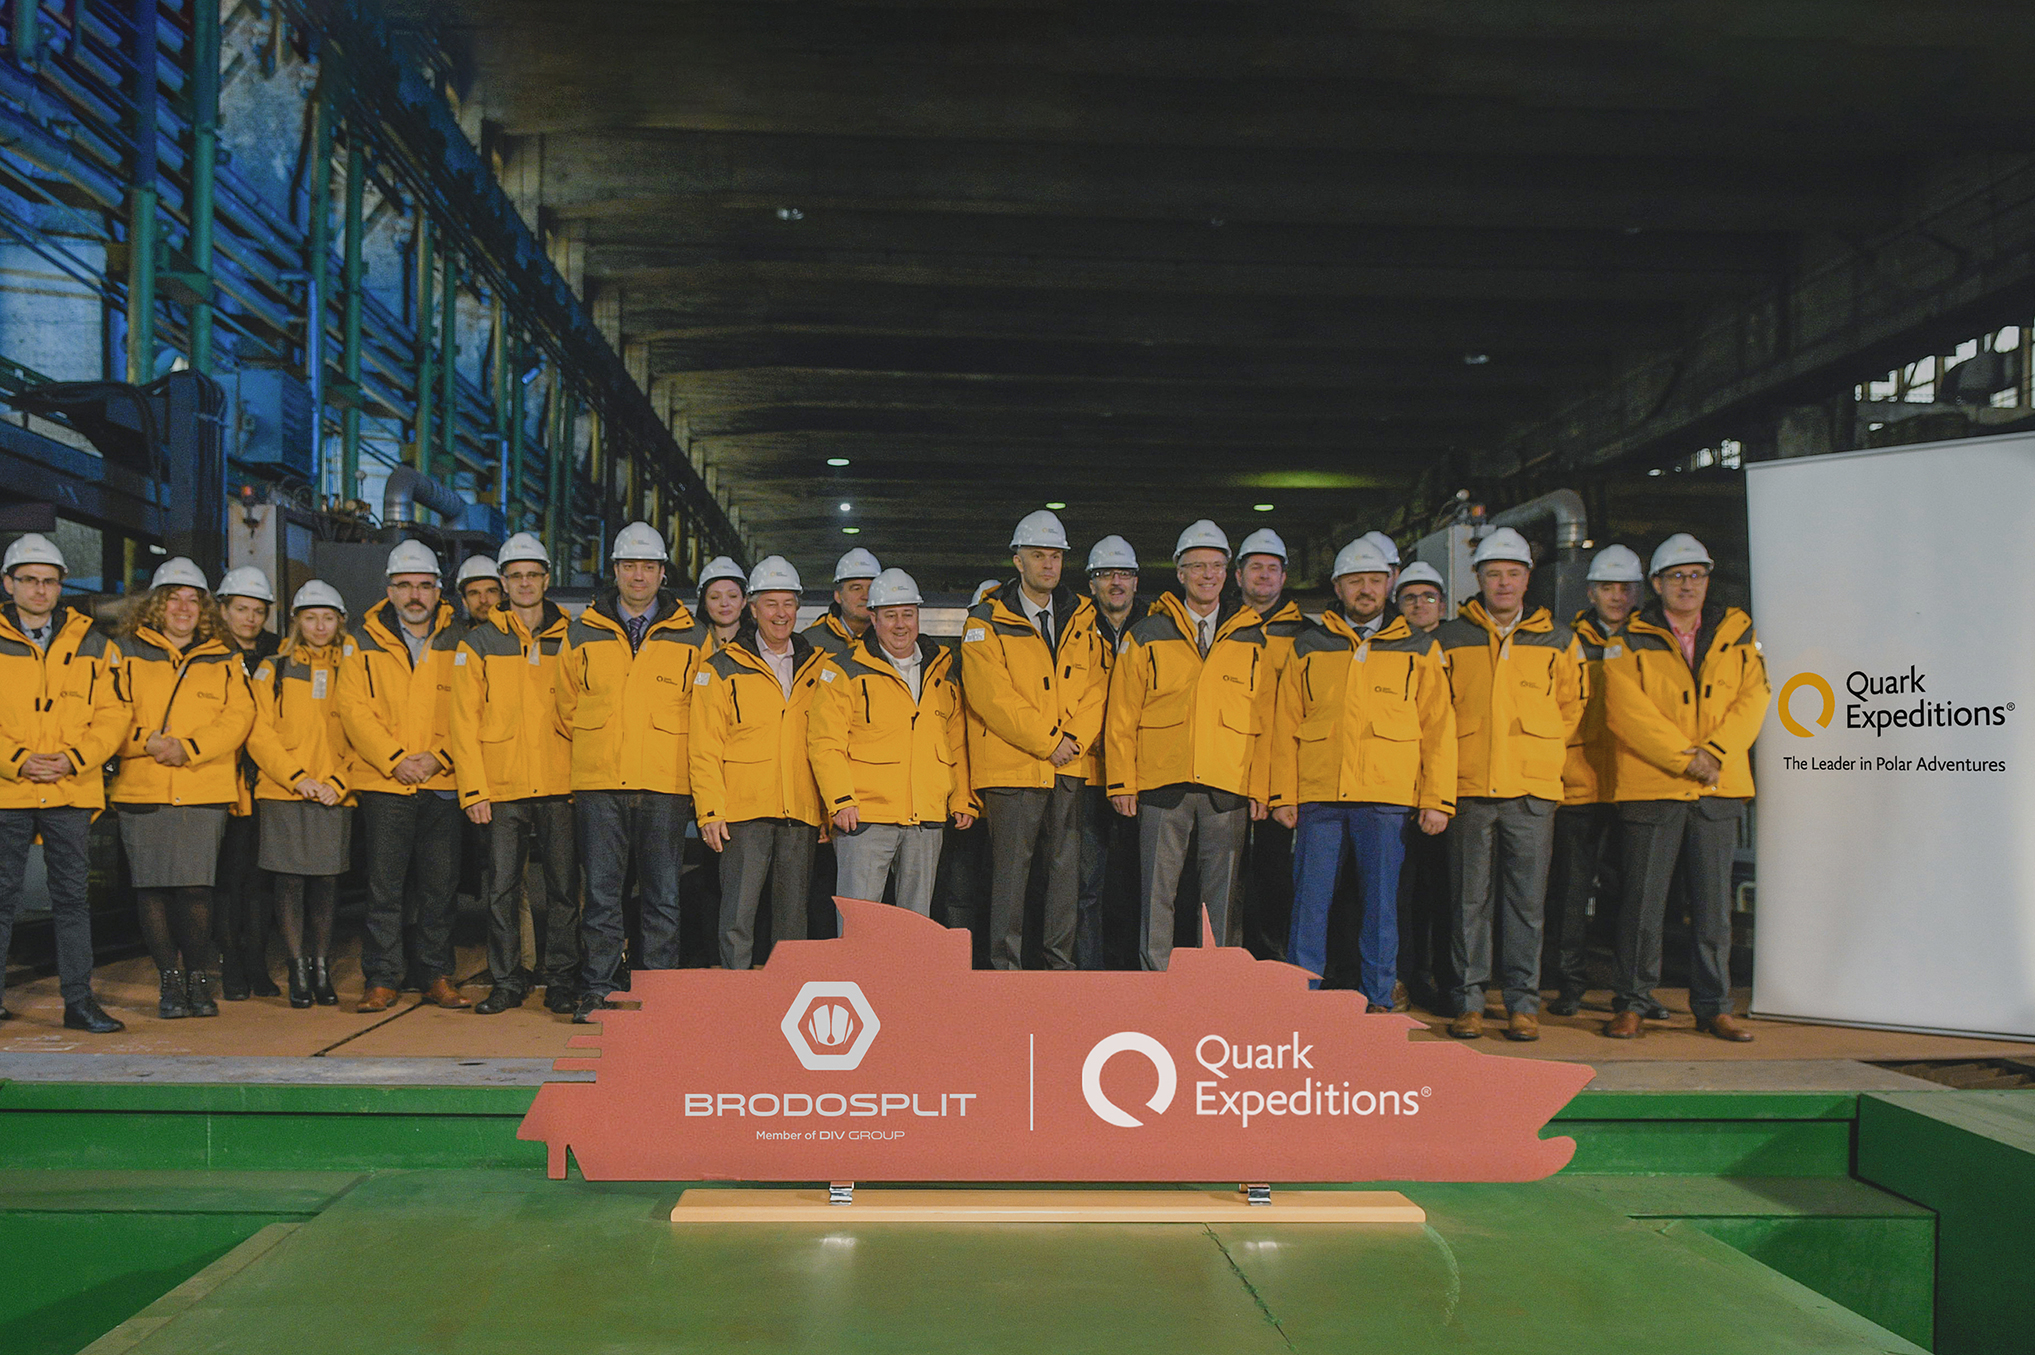 Andrew White, along with the ship building team and executives from Brodosplit, at the steel-cutting ceremony